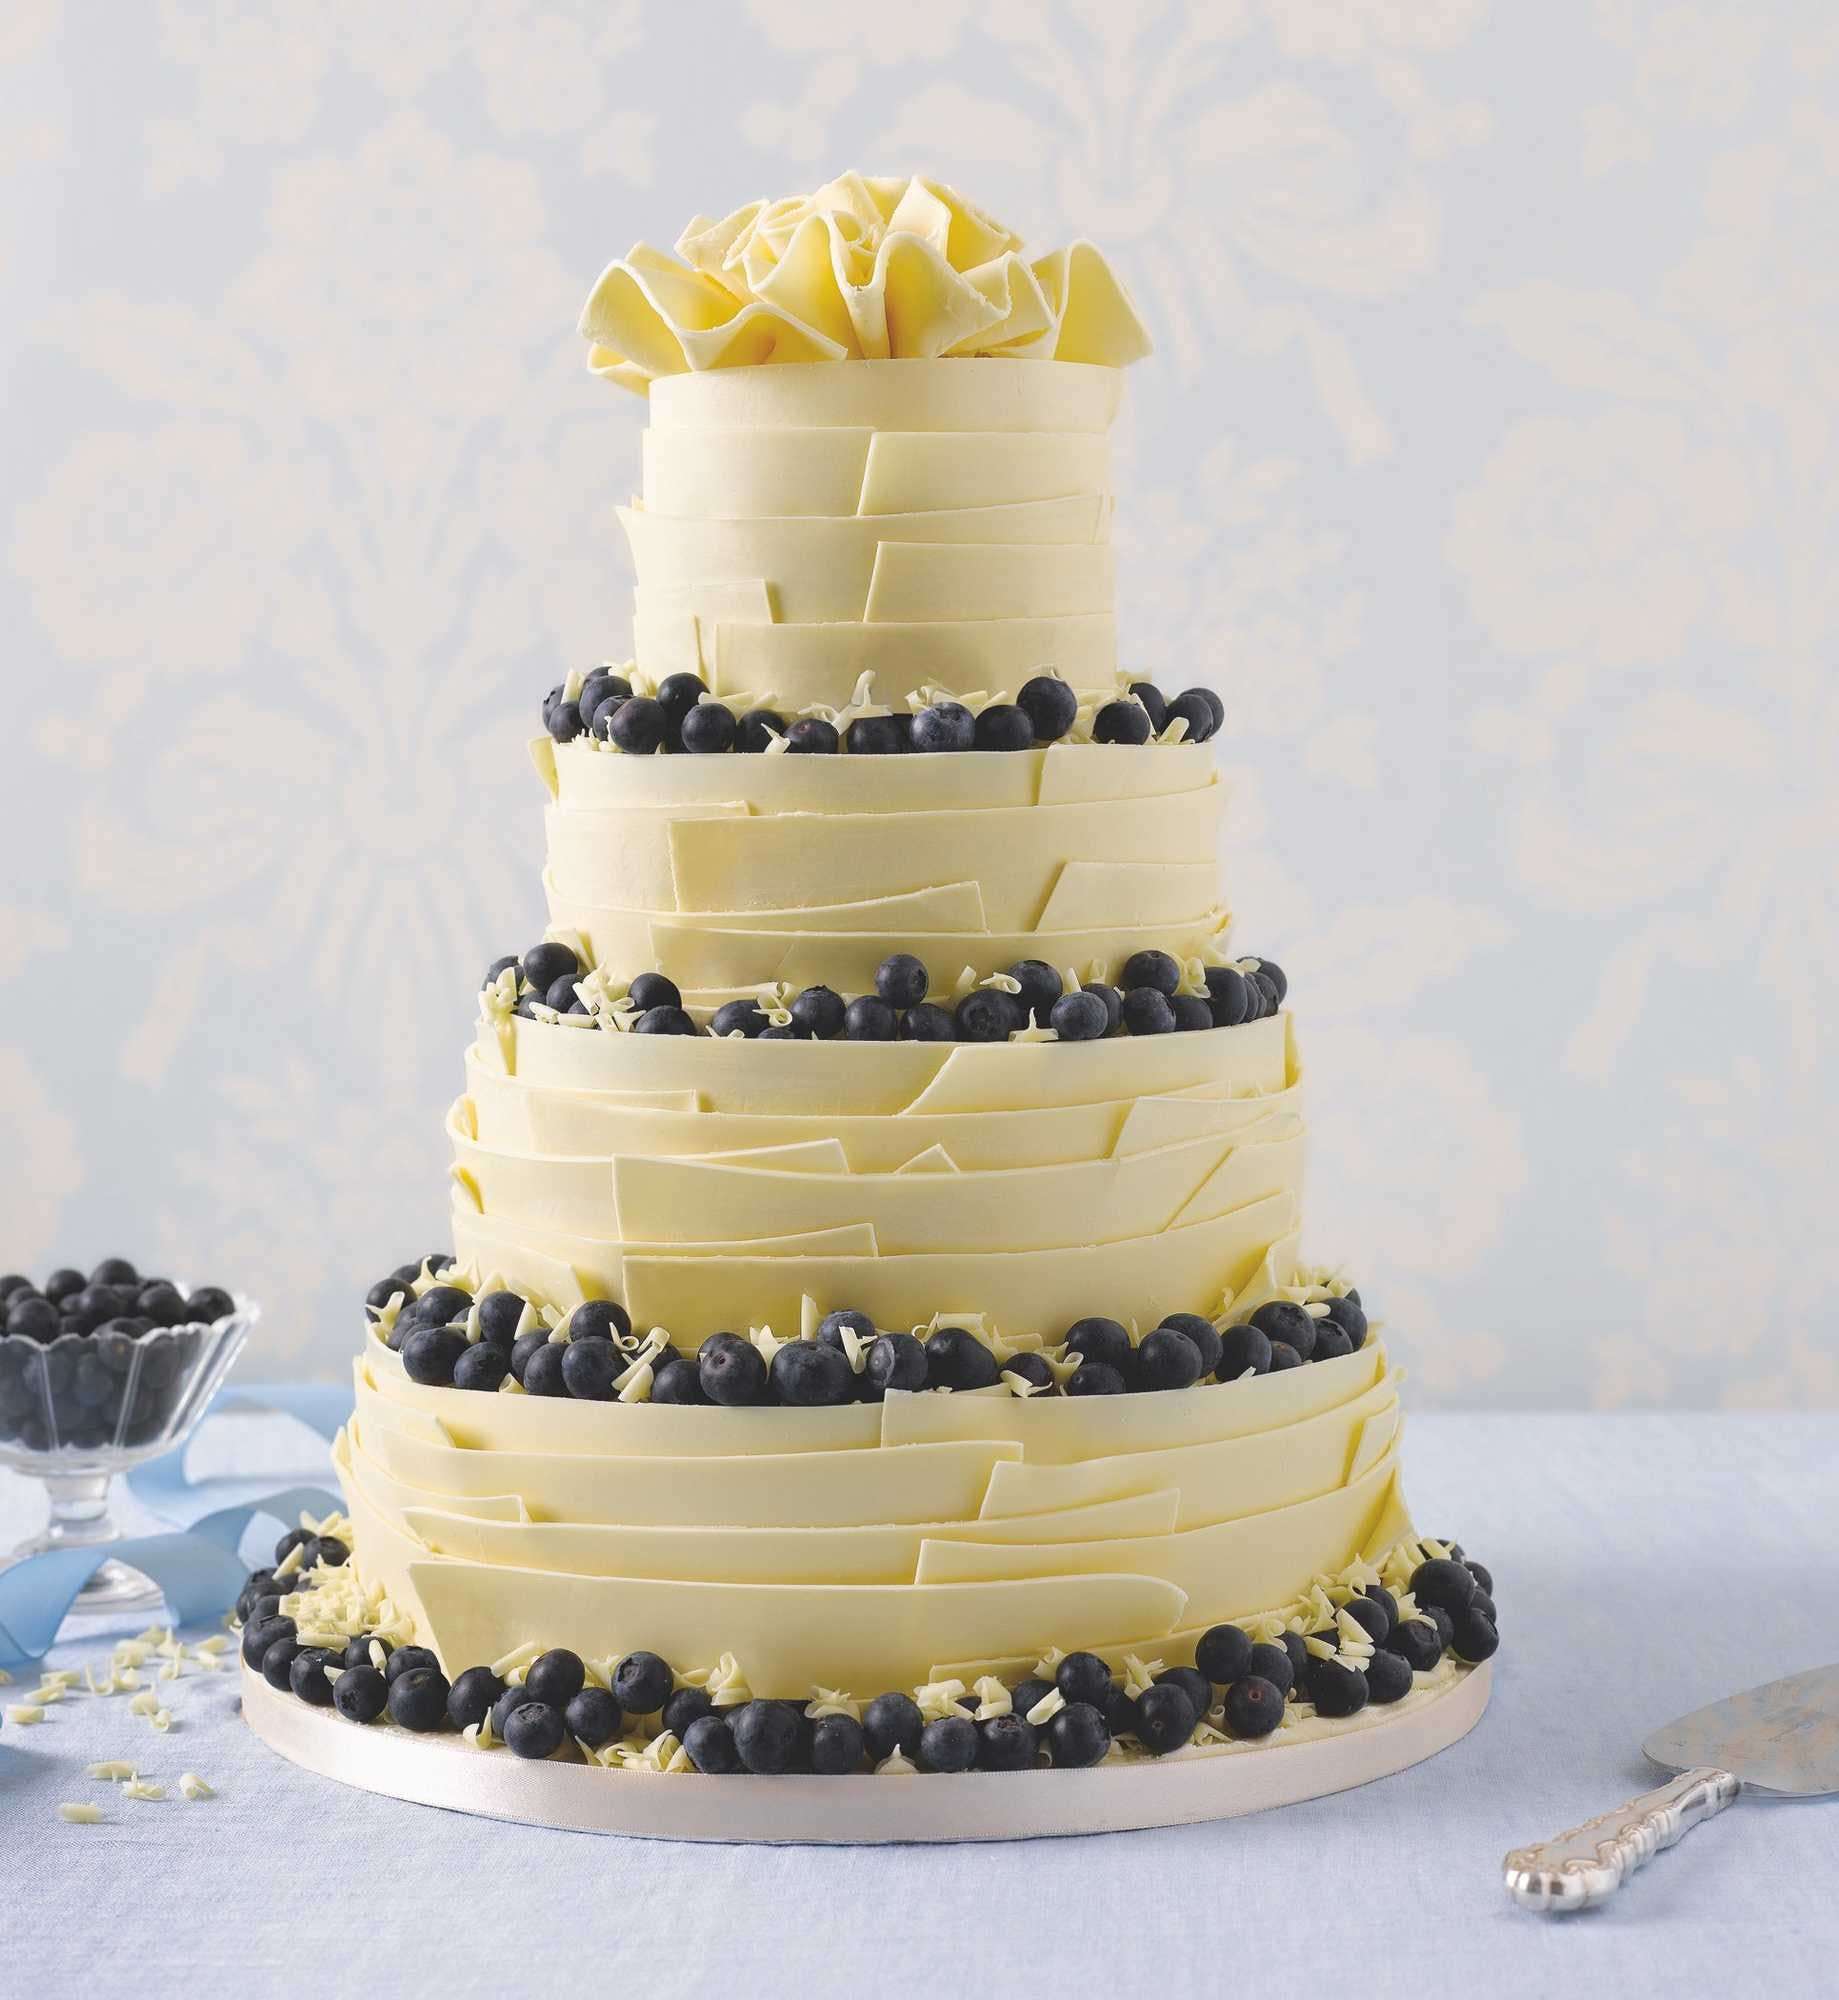 Marks and Spencer Wedding Cakes - Wedding Cakes